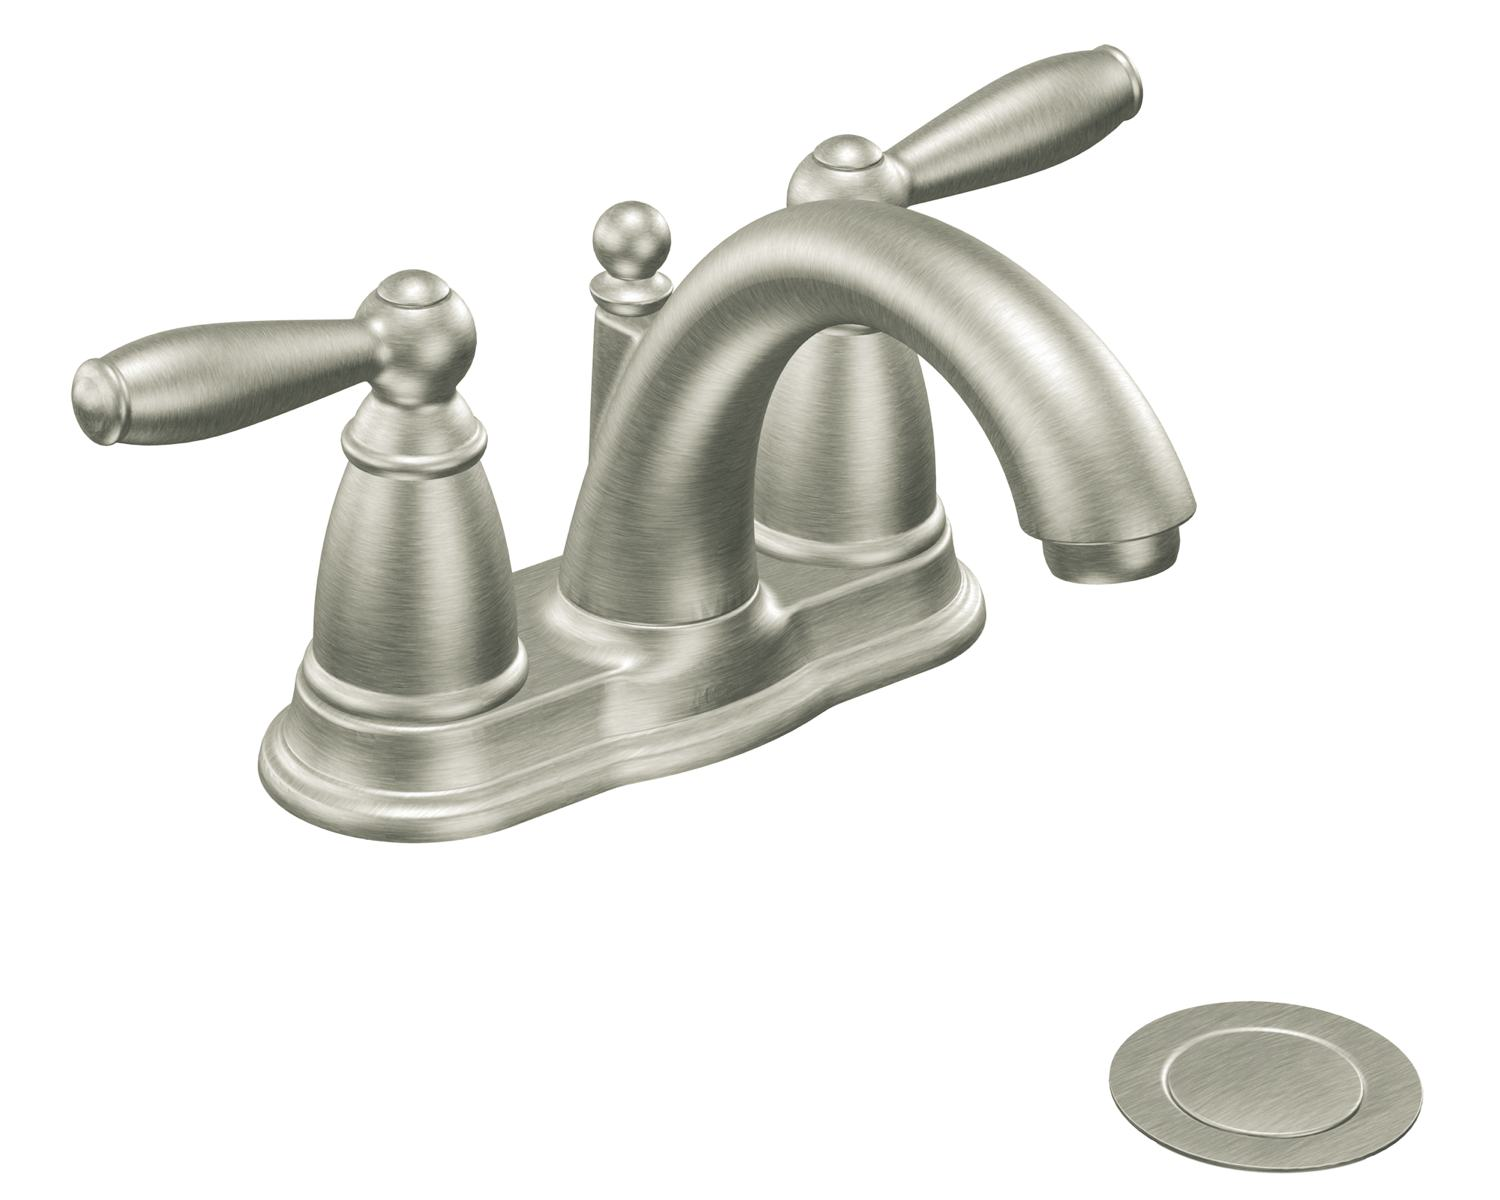 Faucets And Fixtures : ... Two-Handle Low Arc Bathroom Faucet with Drain Assembly, Brushed Nickel